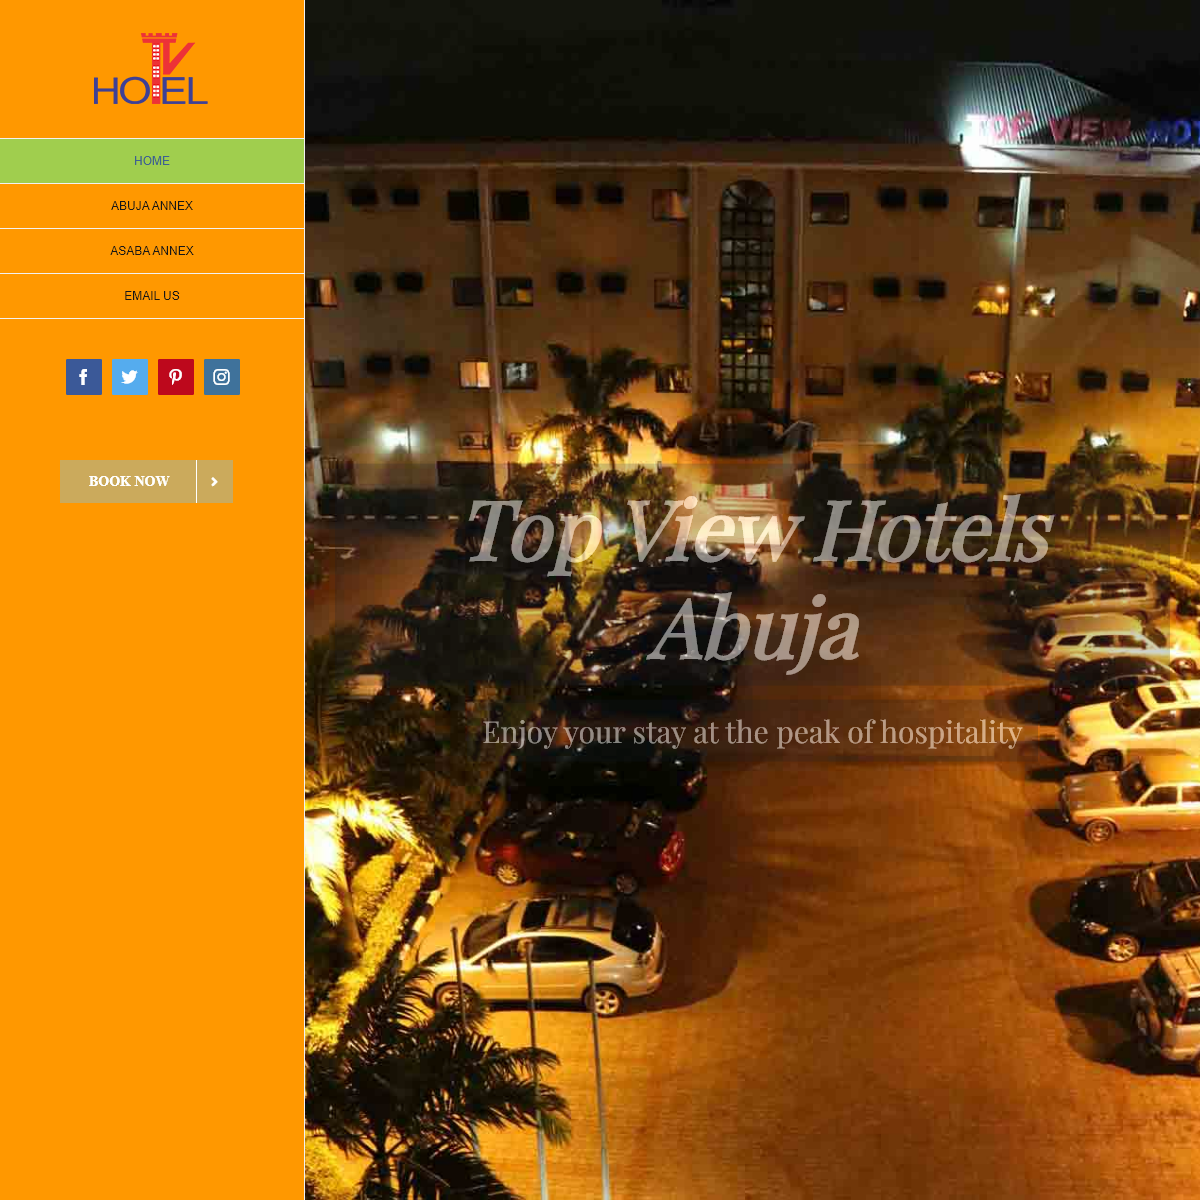 Welcome to Top View Hotels – …the peak of hospitality